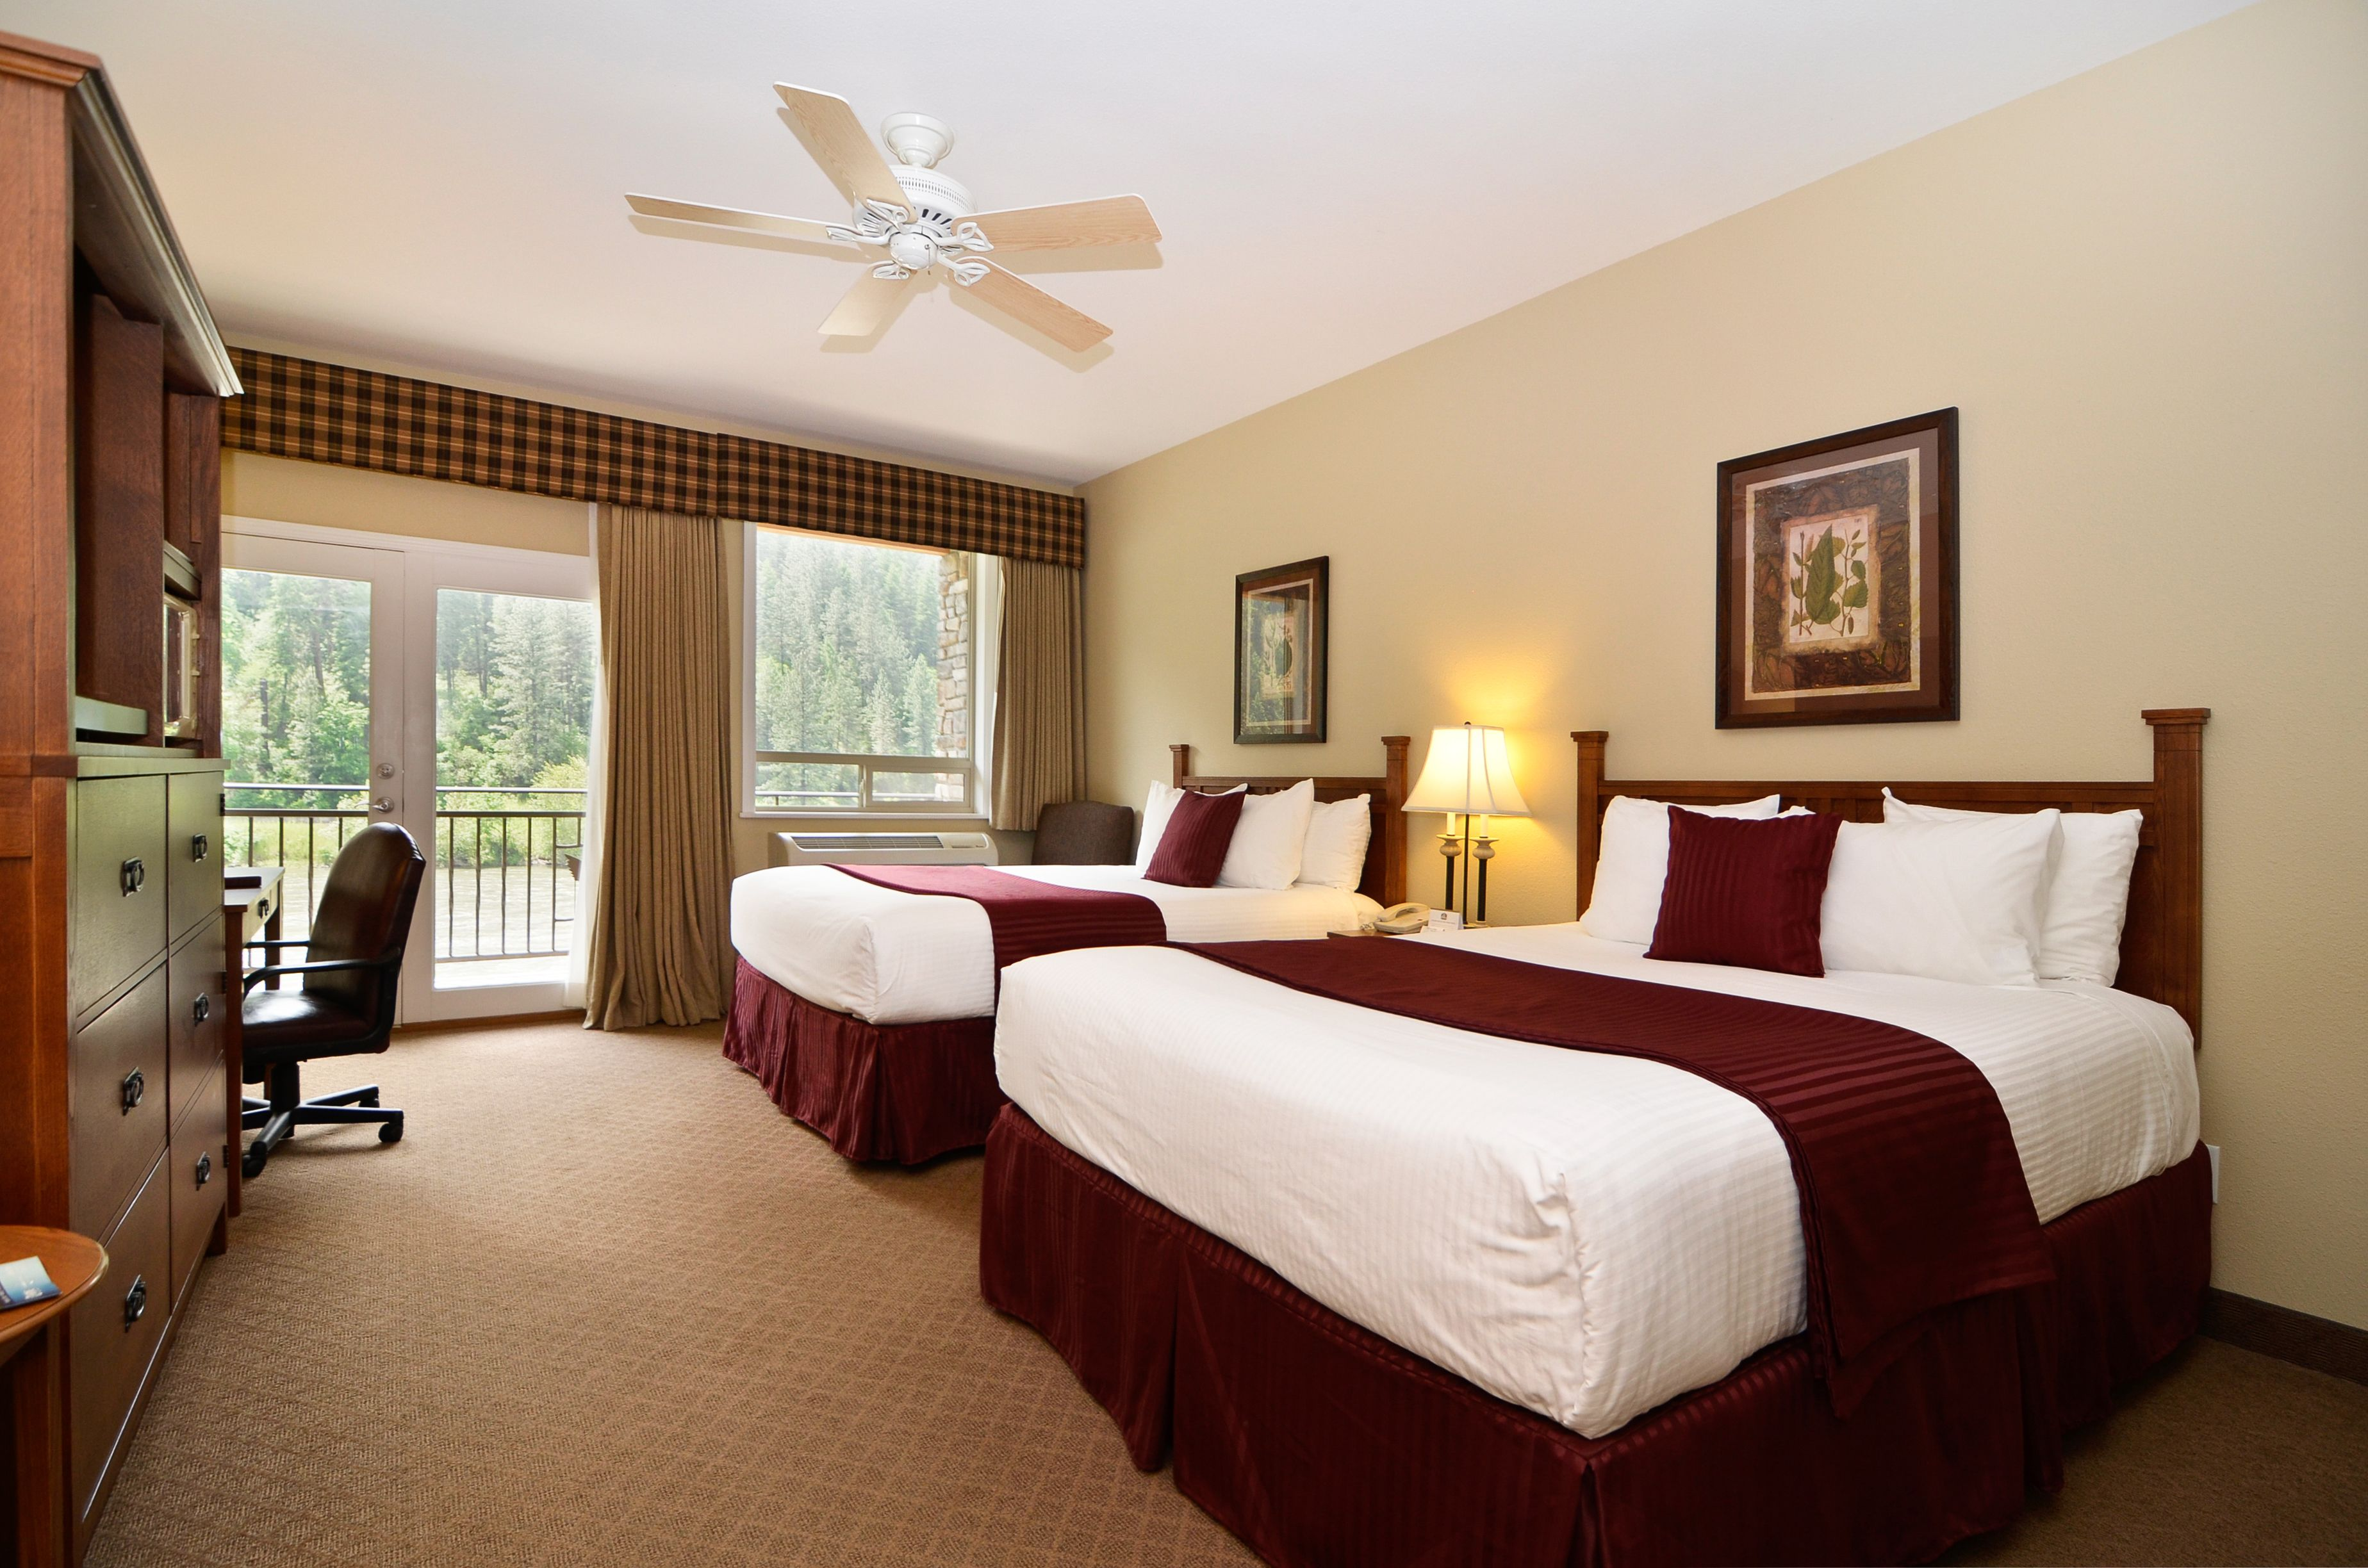 Double King River view Room... let the river lull you to